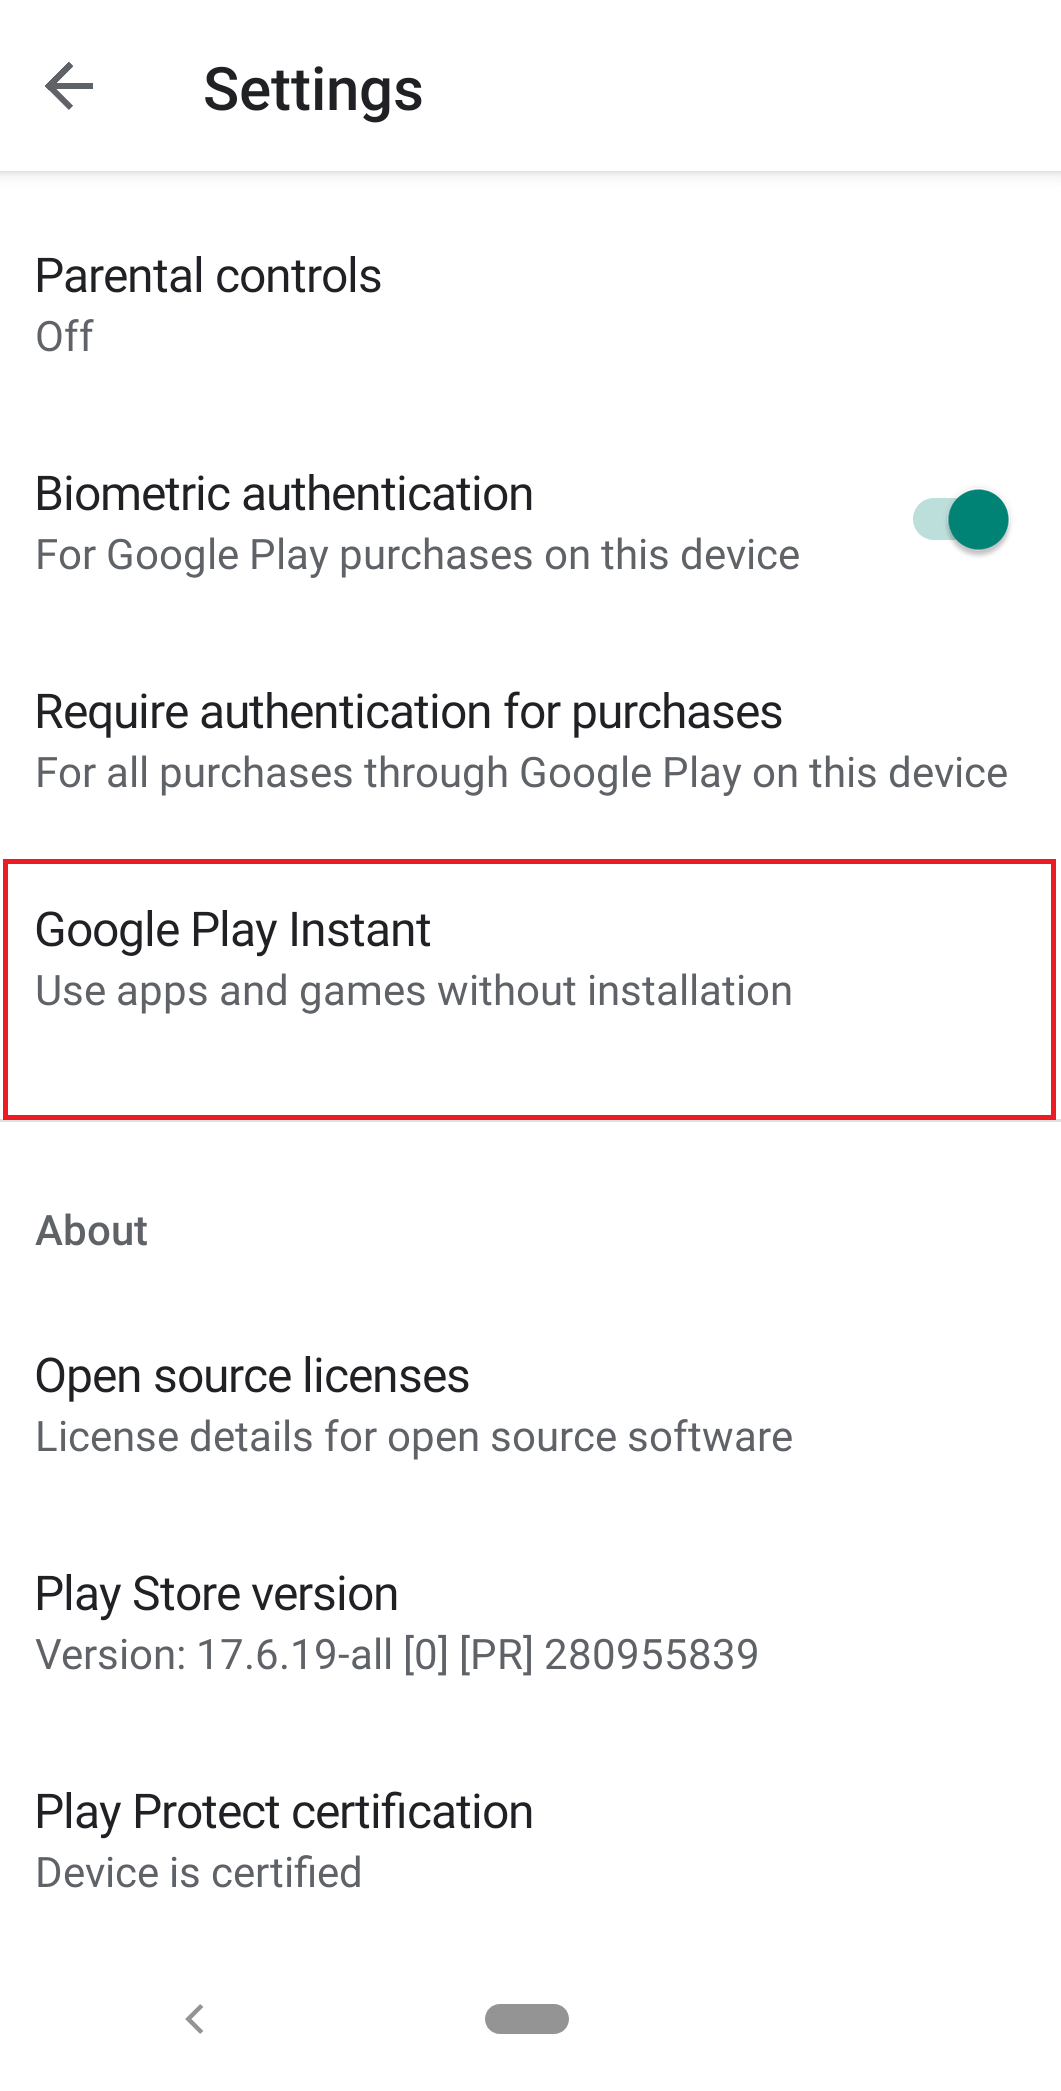 Tap on Google Play Instant